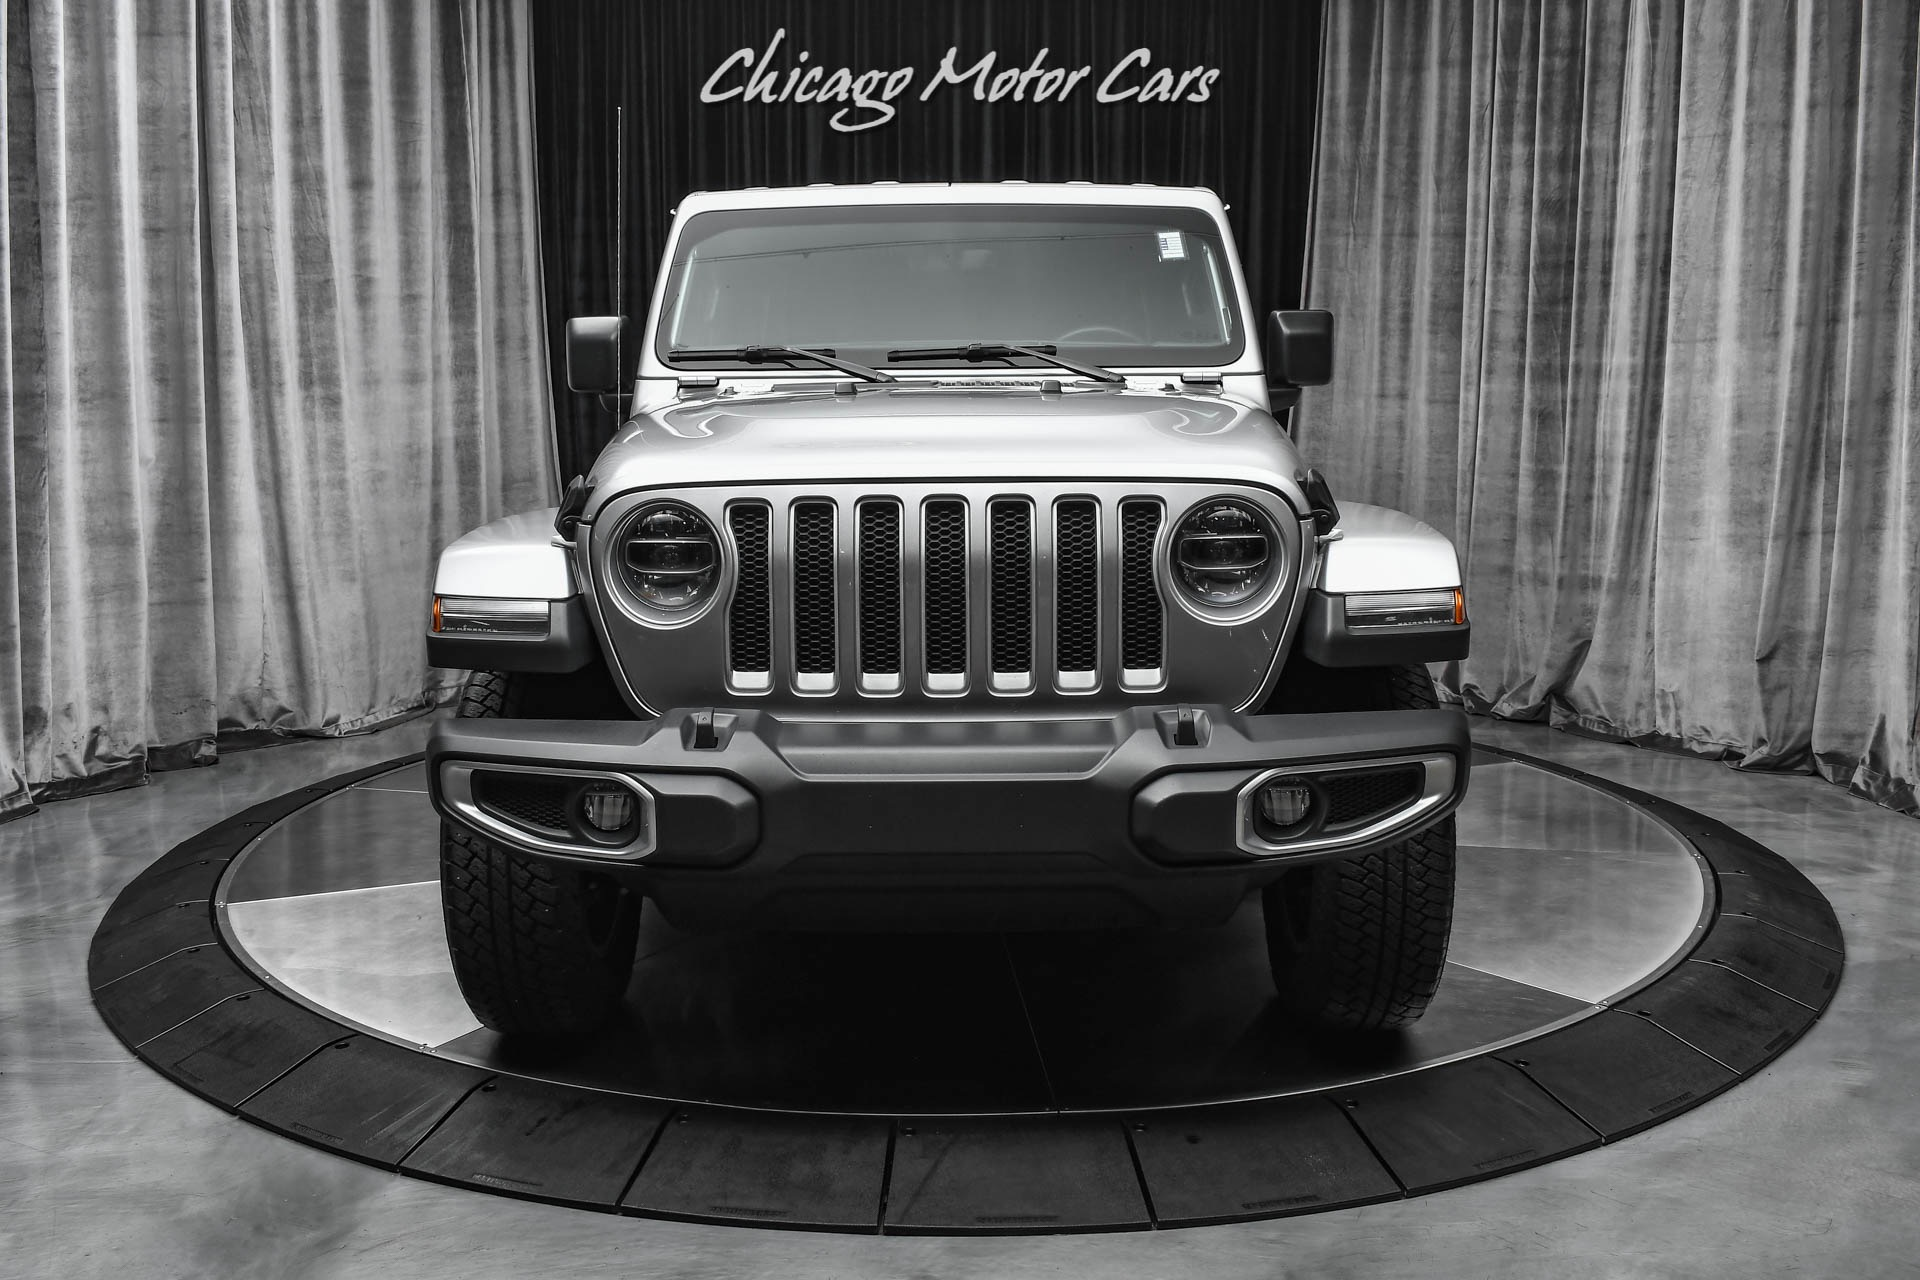 Used-2018-Jeep-Wrangler-Unlimited-Sahara-JL-4x4-Full-Leather-Alpine-Sound-System-UConnect-84